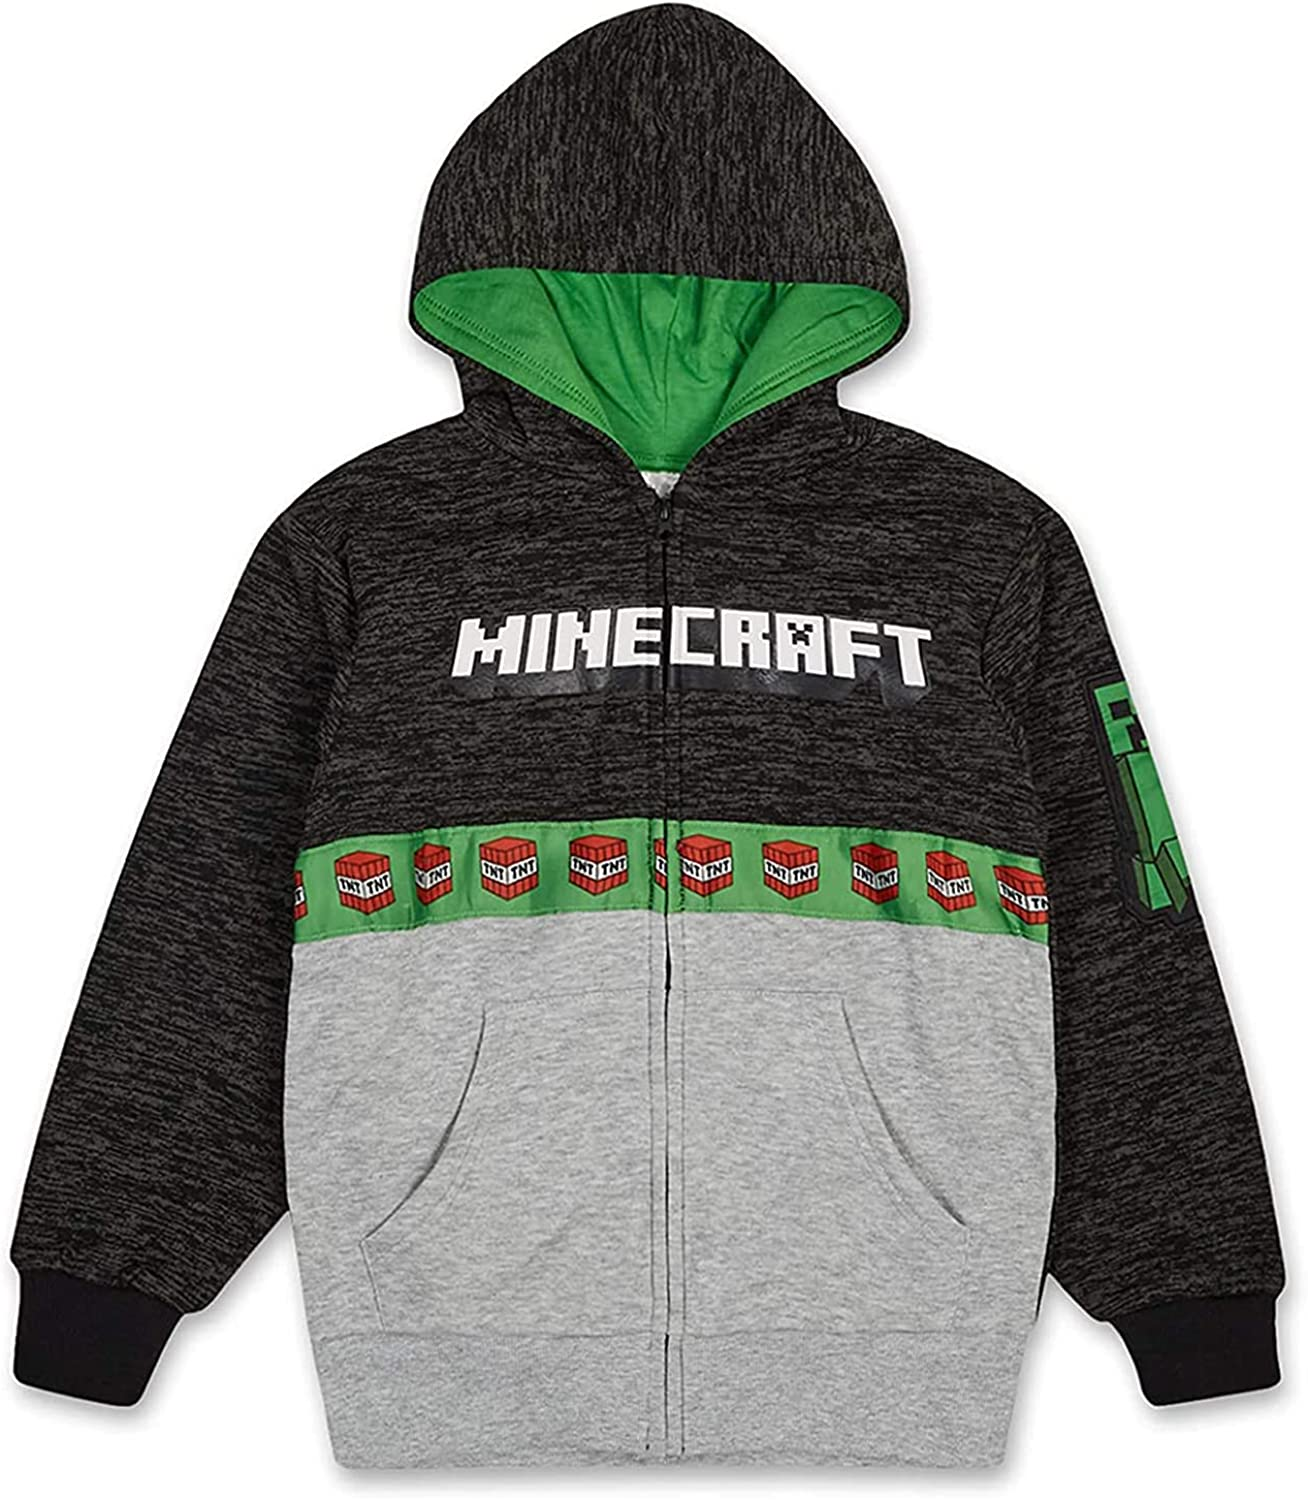 Minecraft Boys Video Game Hoodie - Black and Green Creeper Face - Official Sweatshirt